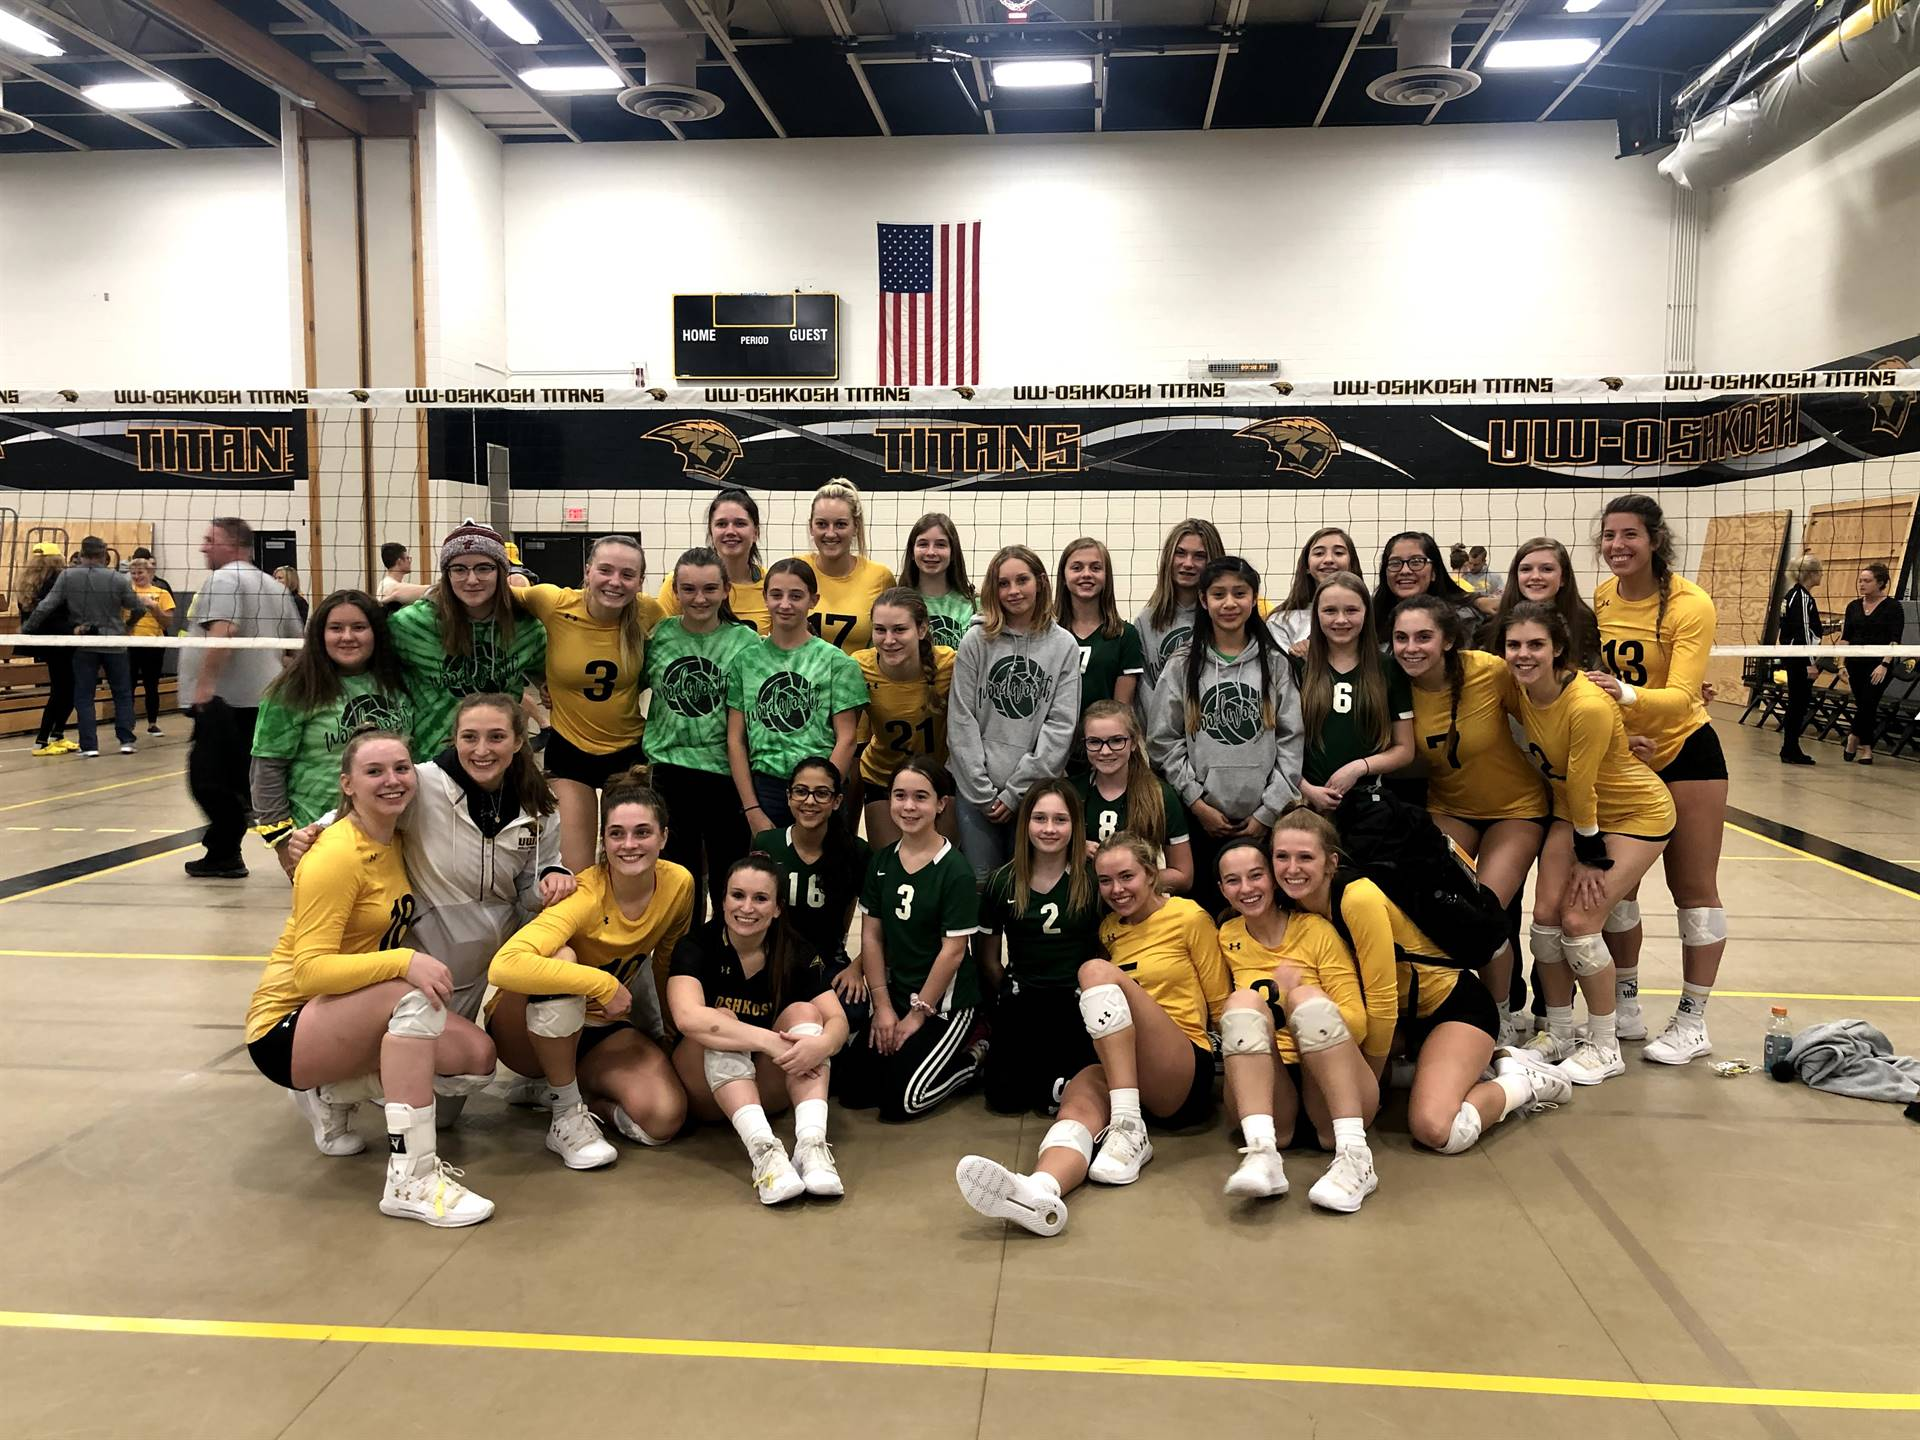 Volleyball team at a an UW-Oshkosh Game